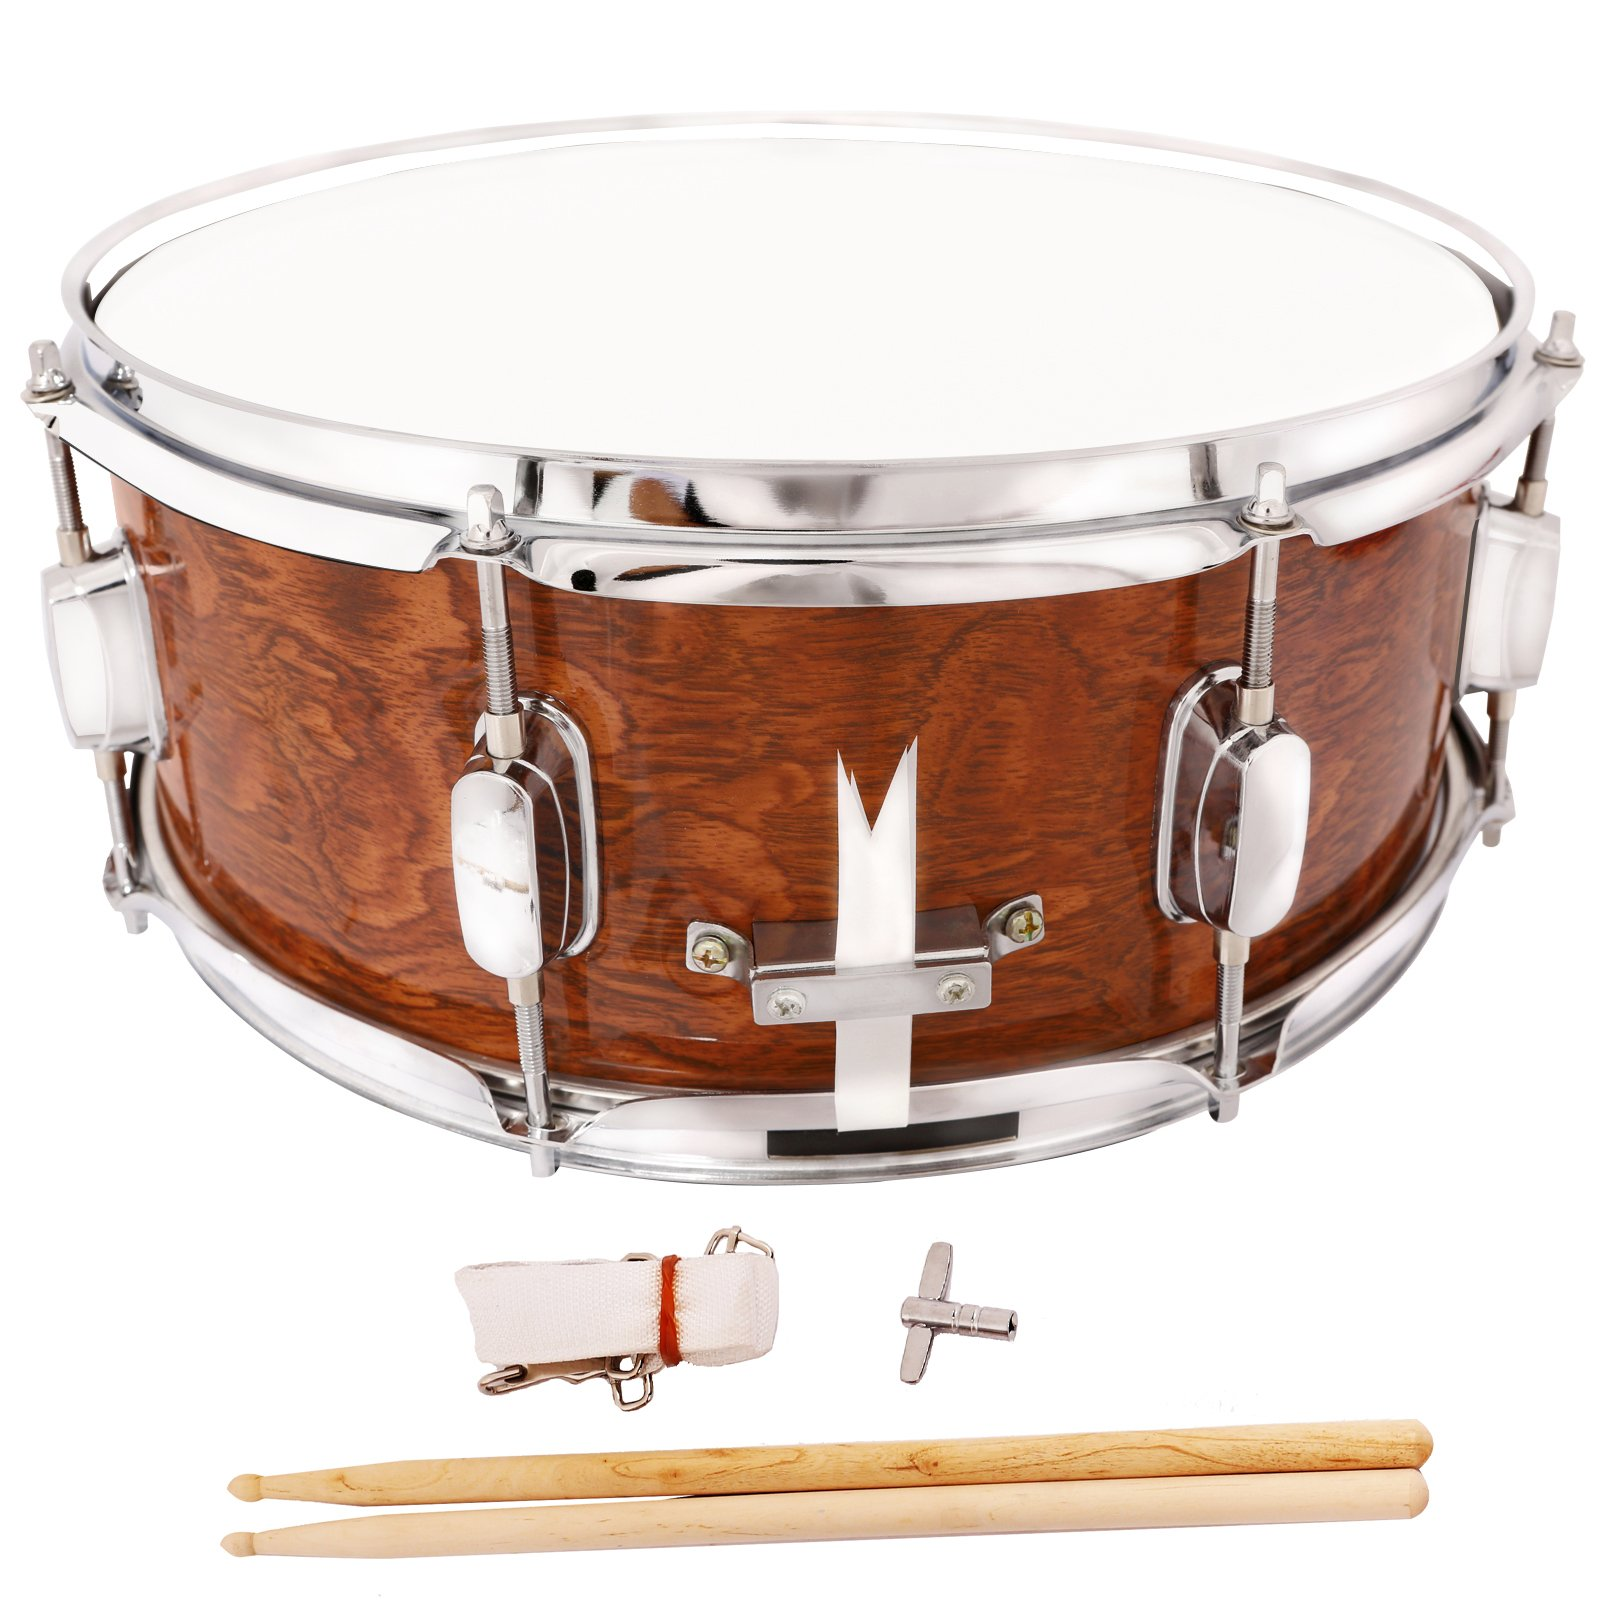 LAGRIMA Student Beginner Snare Drum W/Drum Key, Drumsticks and Strap|14x5.5 inch|Real Wood Shell|8 Metal Tuning Lugs by LAGRIMA